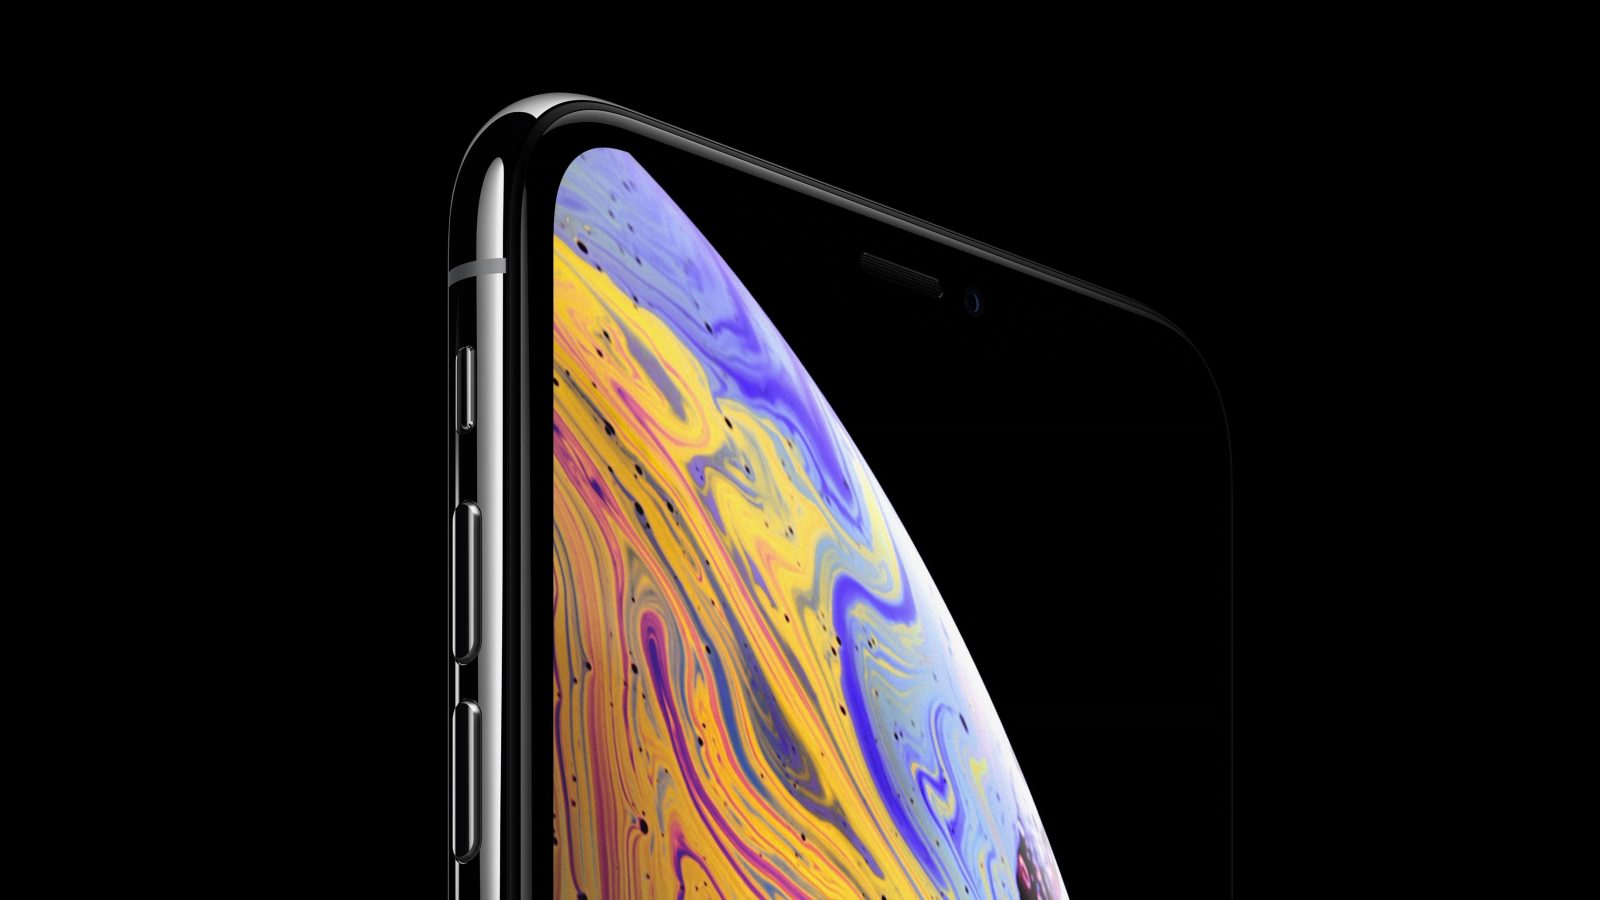 iphone xs max live wallpaper full hd